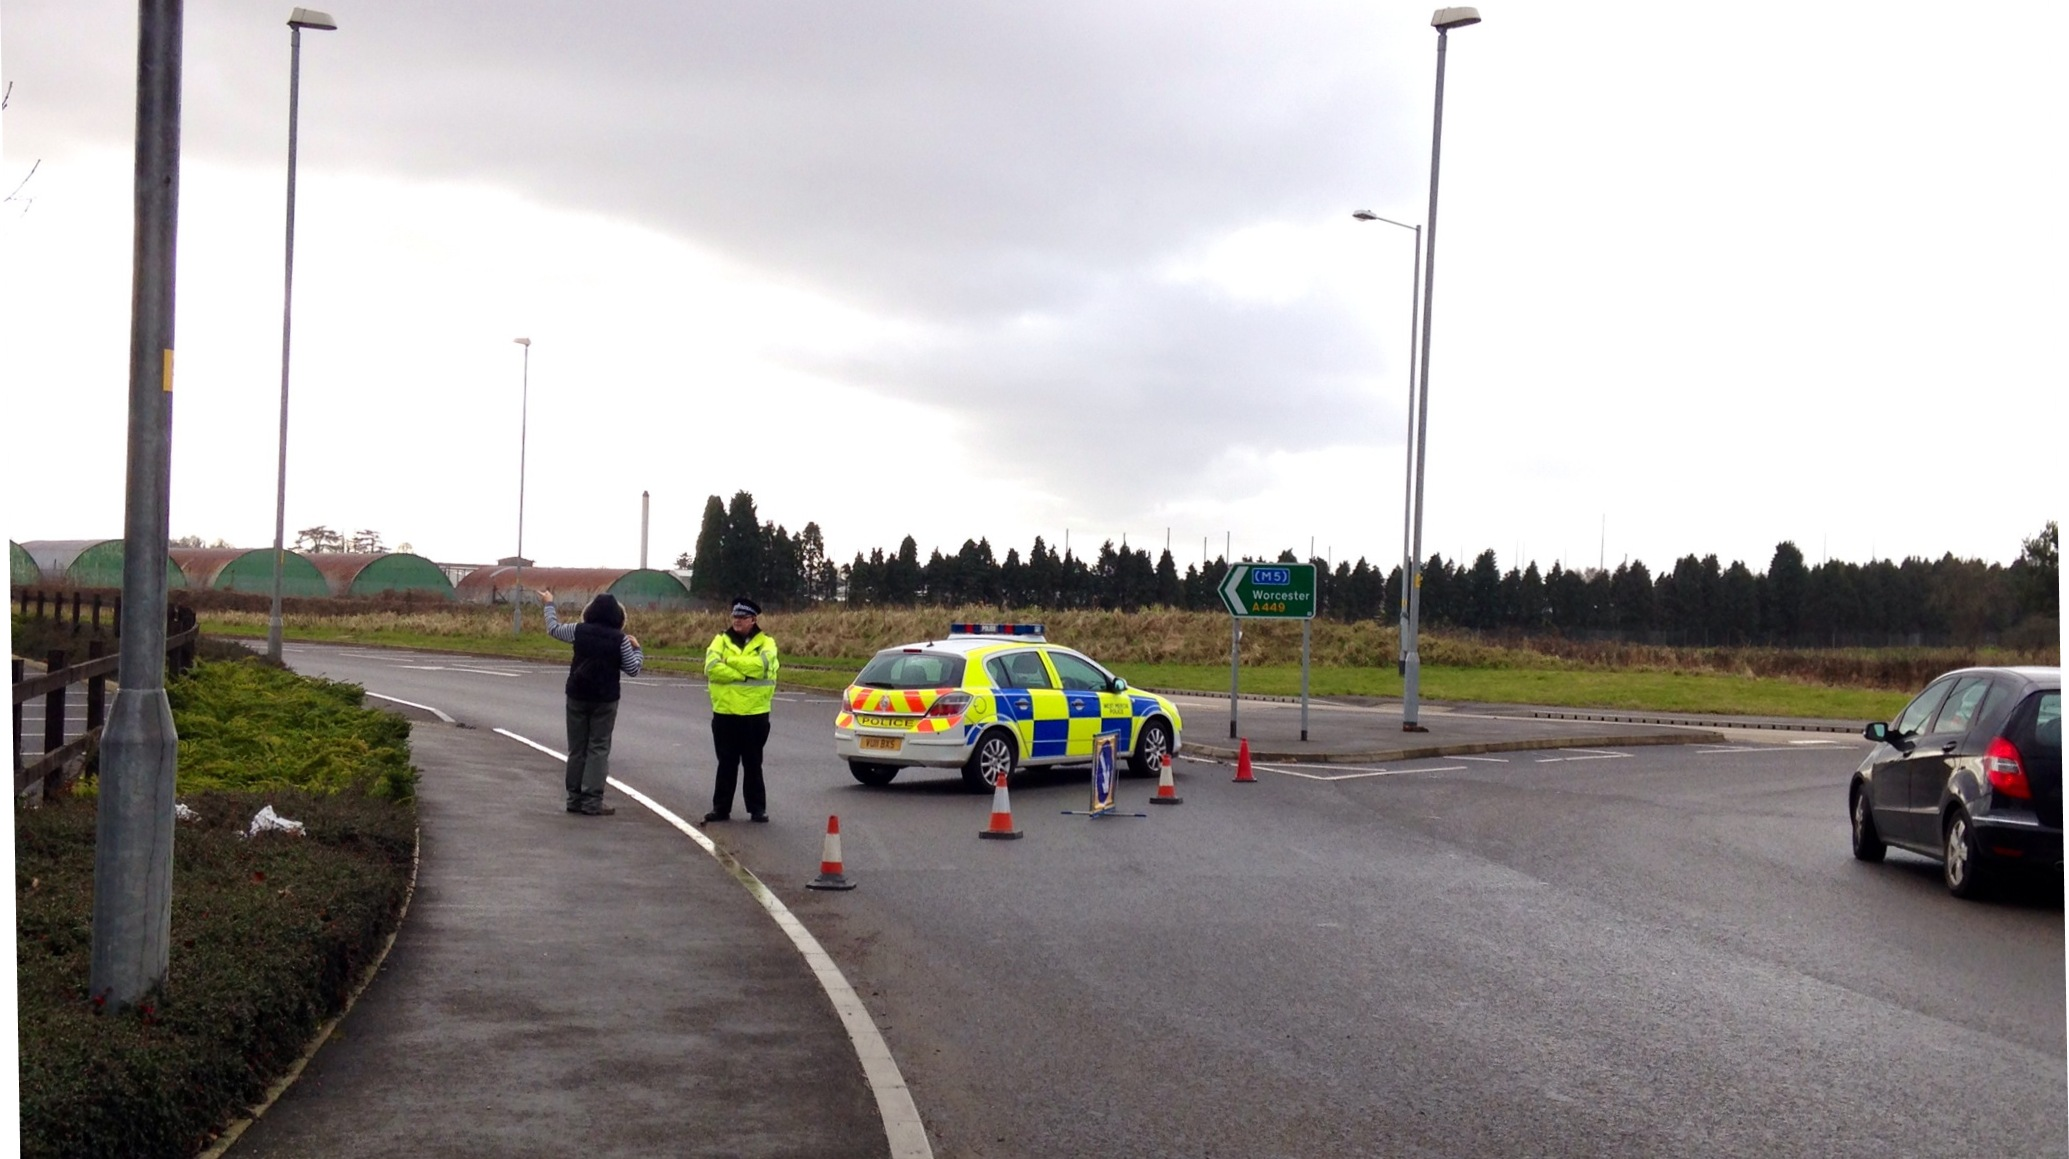 Police closed the A449 from Hoo Farm industrial estate to the junction with Droitwich Road for more than five hours after the crash which killed Quarry Bank man Robert Coulson.